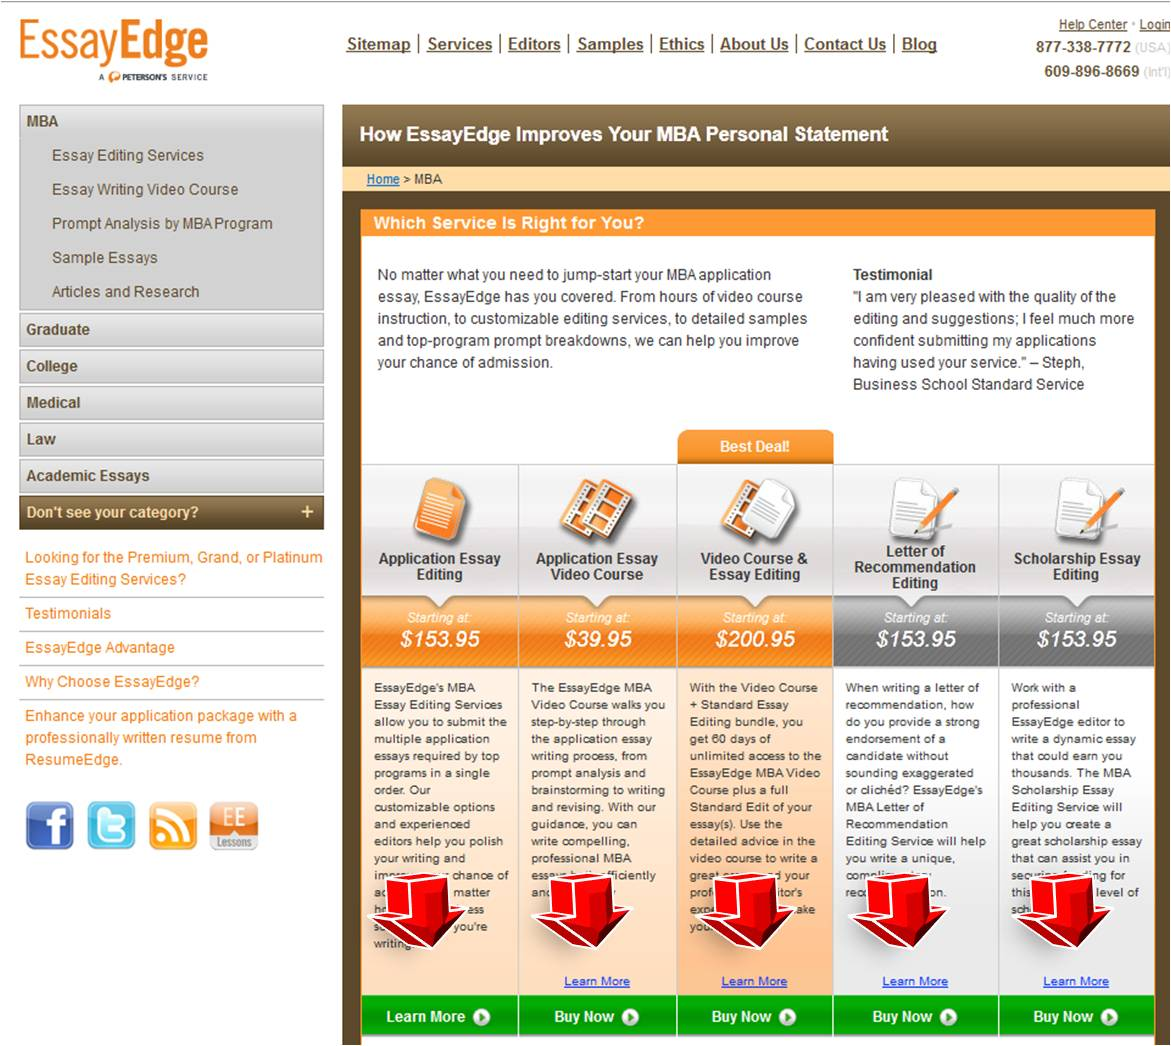 essay edge coupon code